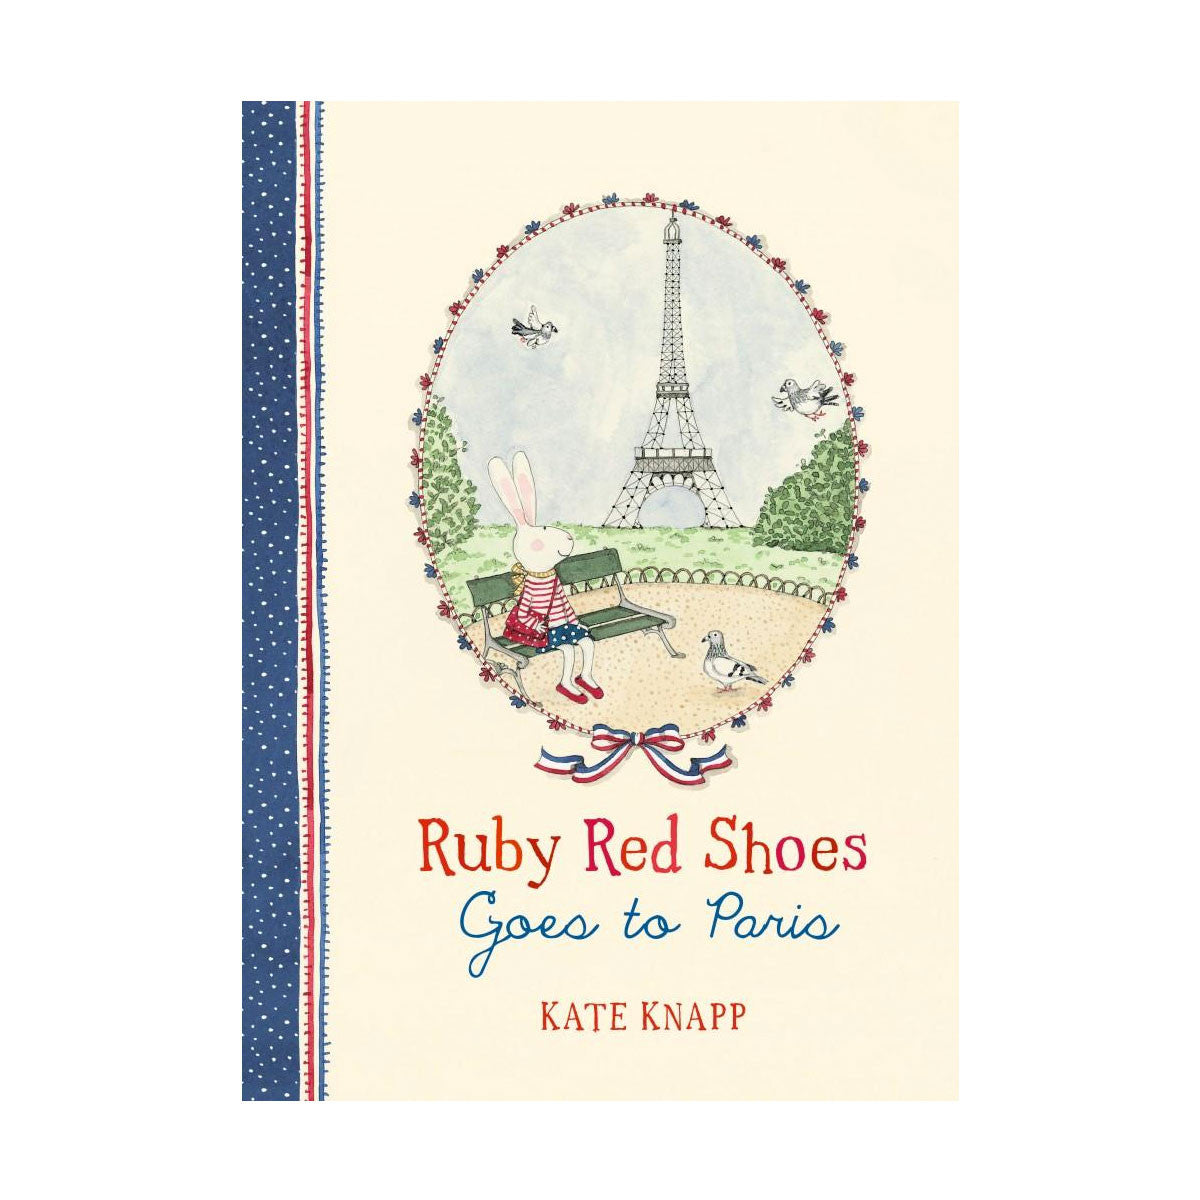 Ruby Red Shoes Goes To Paris Book Little Earth Nest Books at Little Earth Nest Eco Shop